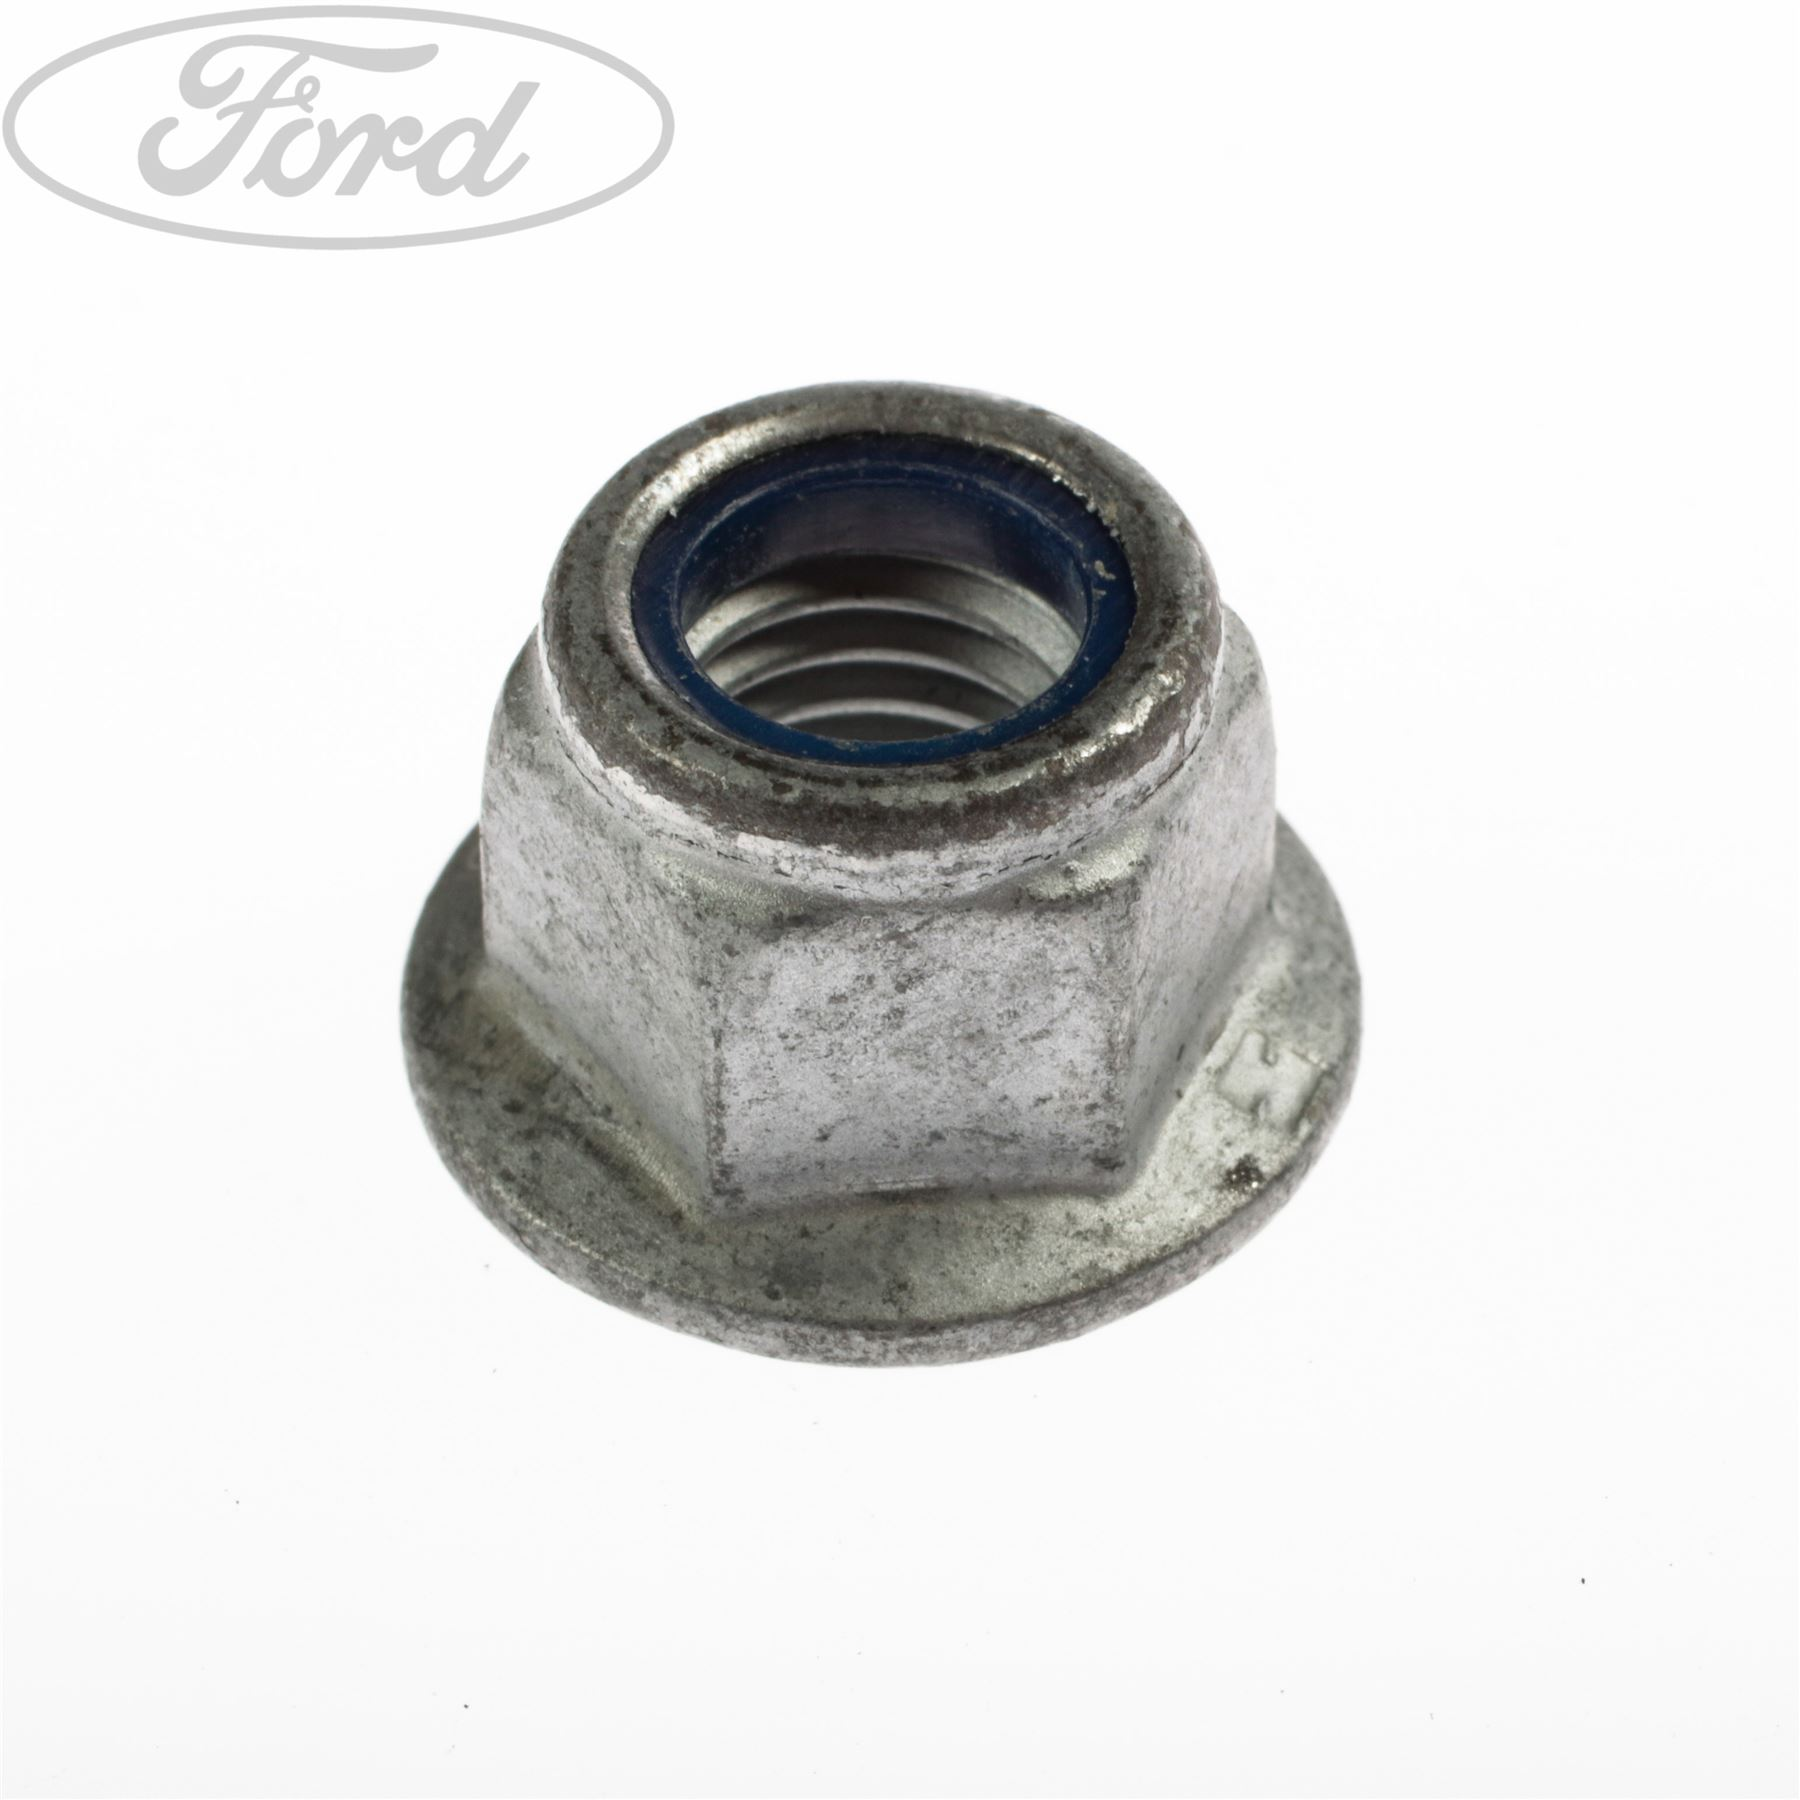 GENUINE FORD MONDEO PASSENGER SIDE FRONT HUB KNUCKLE N//S ABS 2008 2009-2014